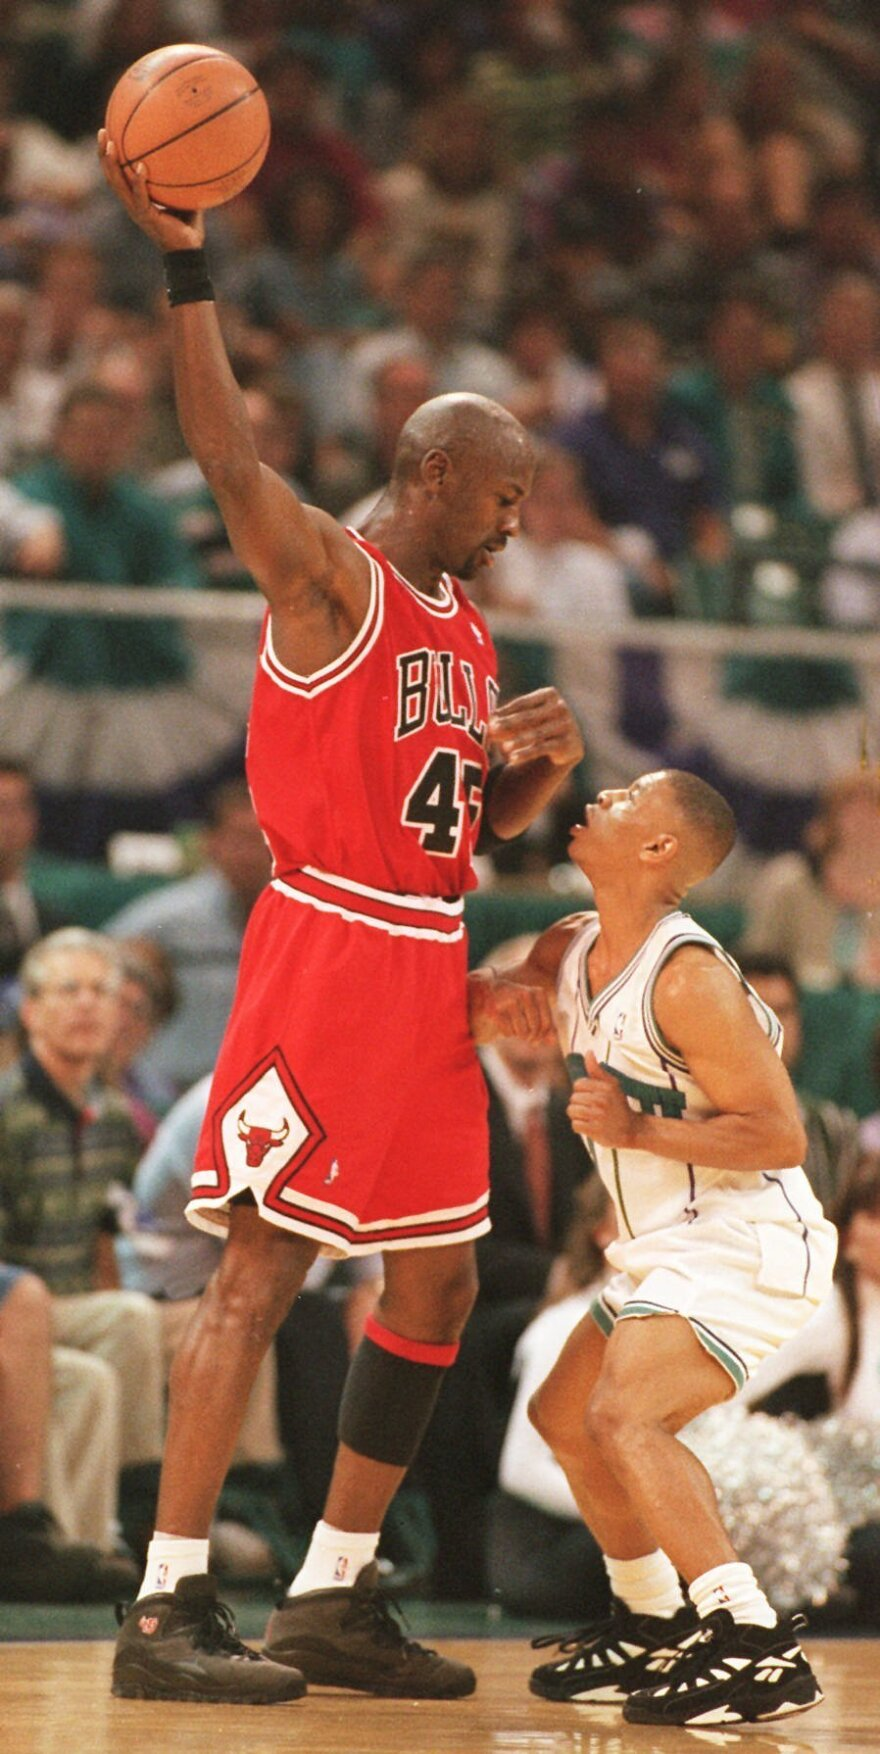 Chicago Bulls' Michael Jordan looks down on Muggsy Bogues during a game in 1995. Bogues, who stands 5 feet, 3 inches, is the shortest player in NBA history.